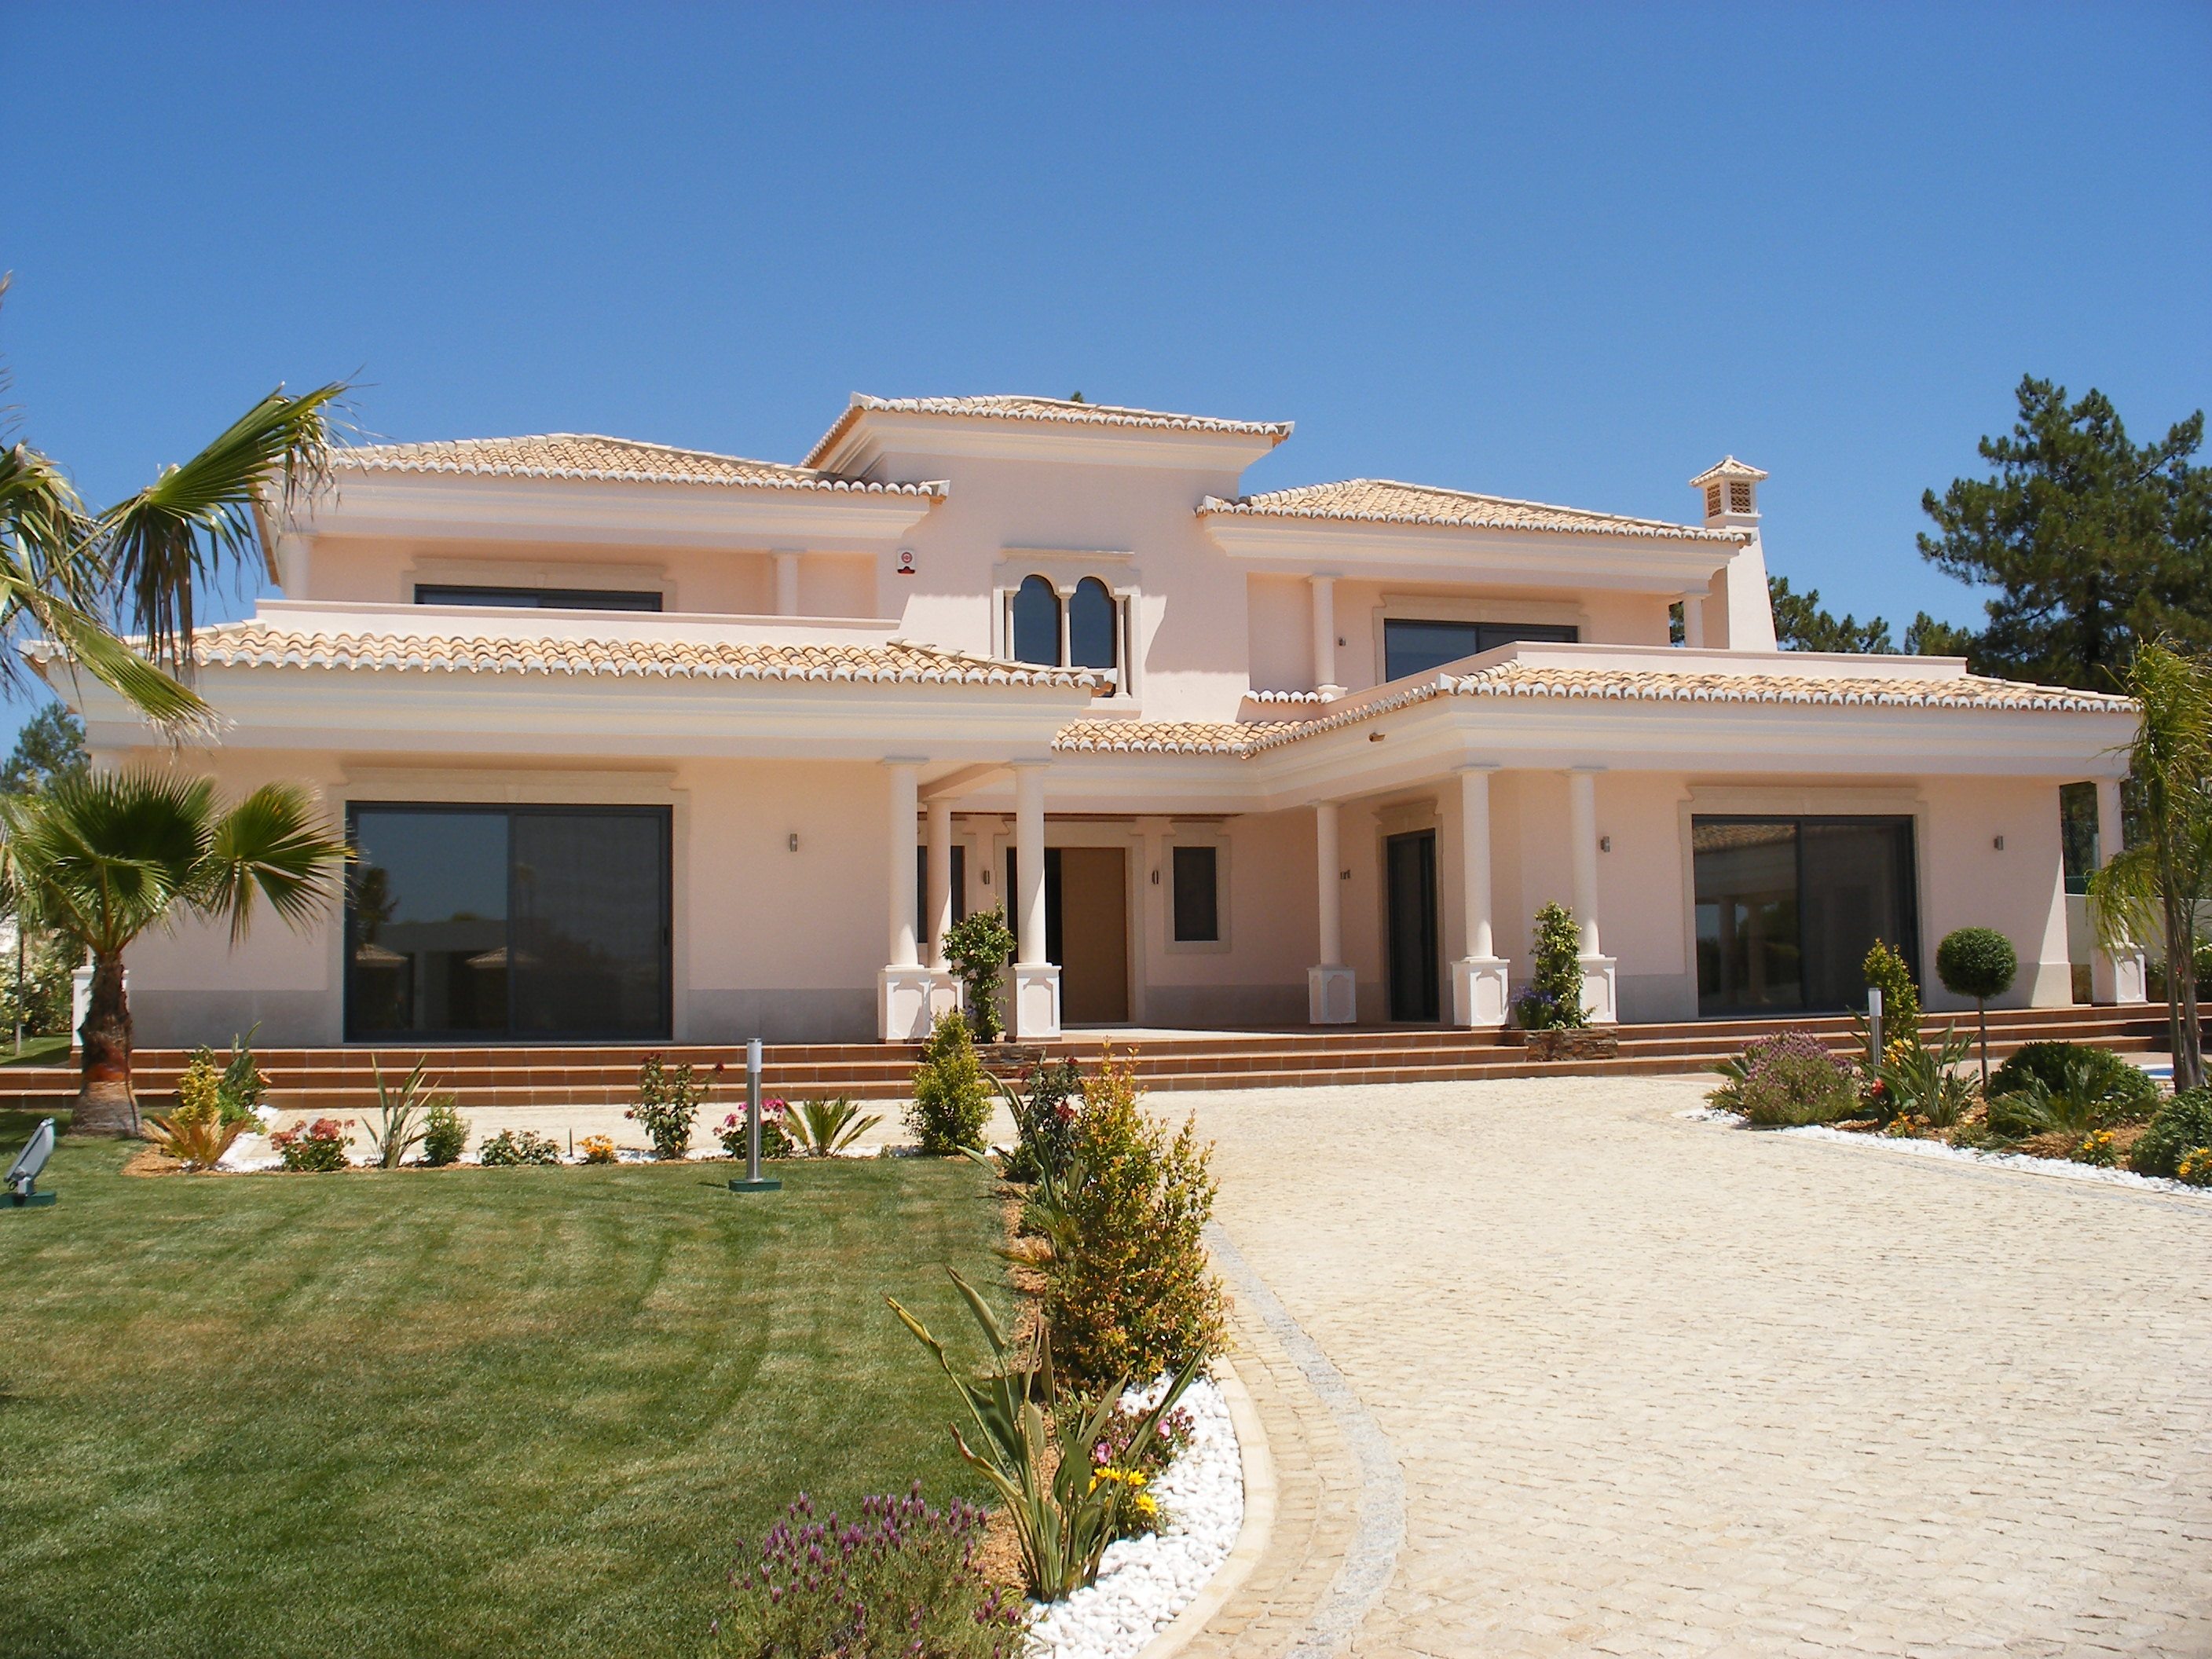 Vale do lobo luxury villas and houses for sale over 1 for Luxury beachfront property for sale